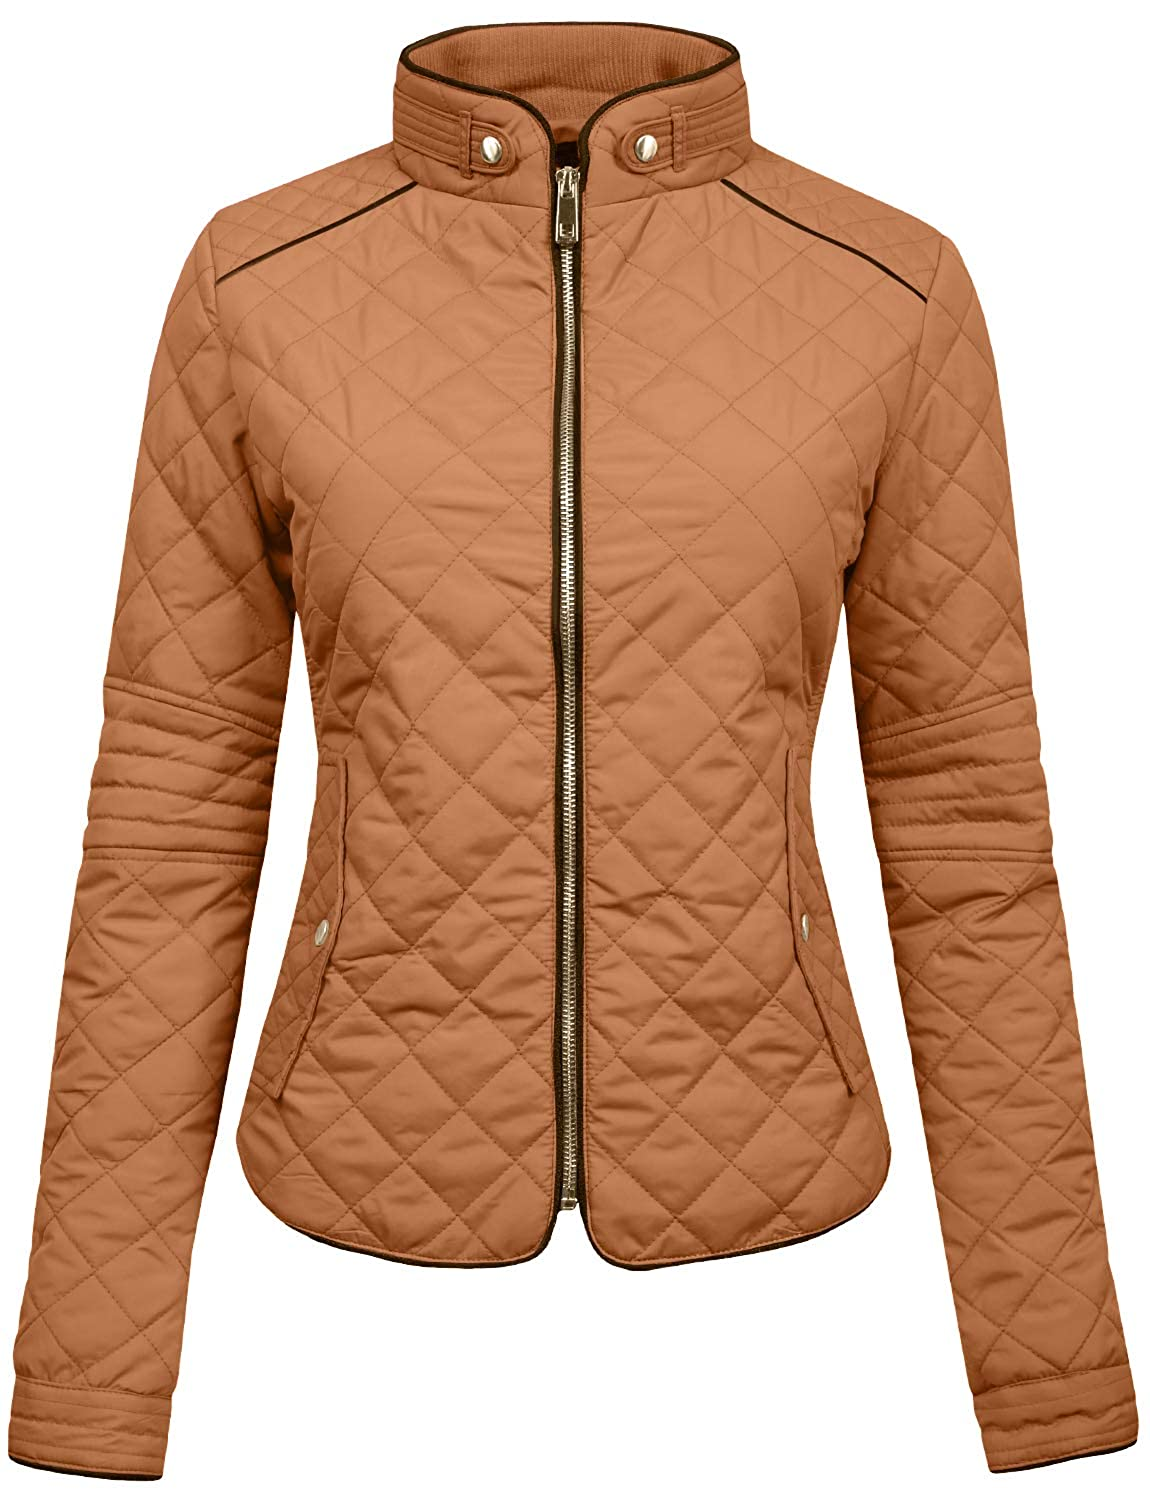 NE PEOPLE Womens Lightweight Quilted Zip Jacket/Vest NEWJ22